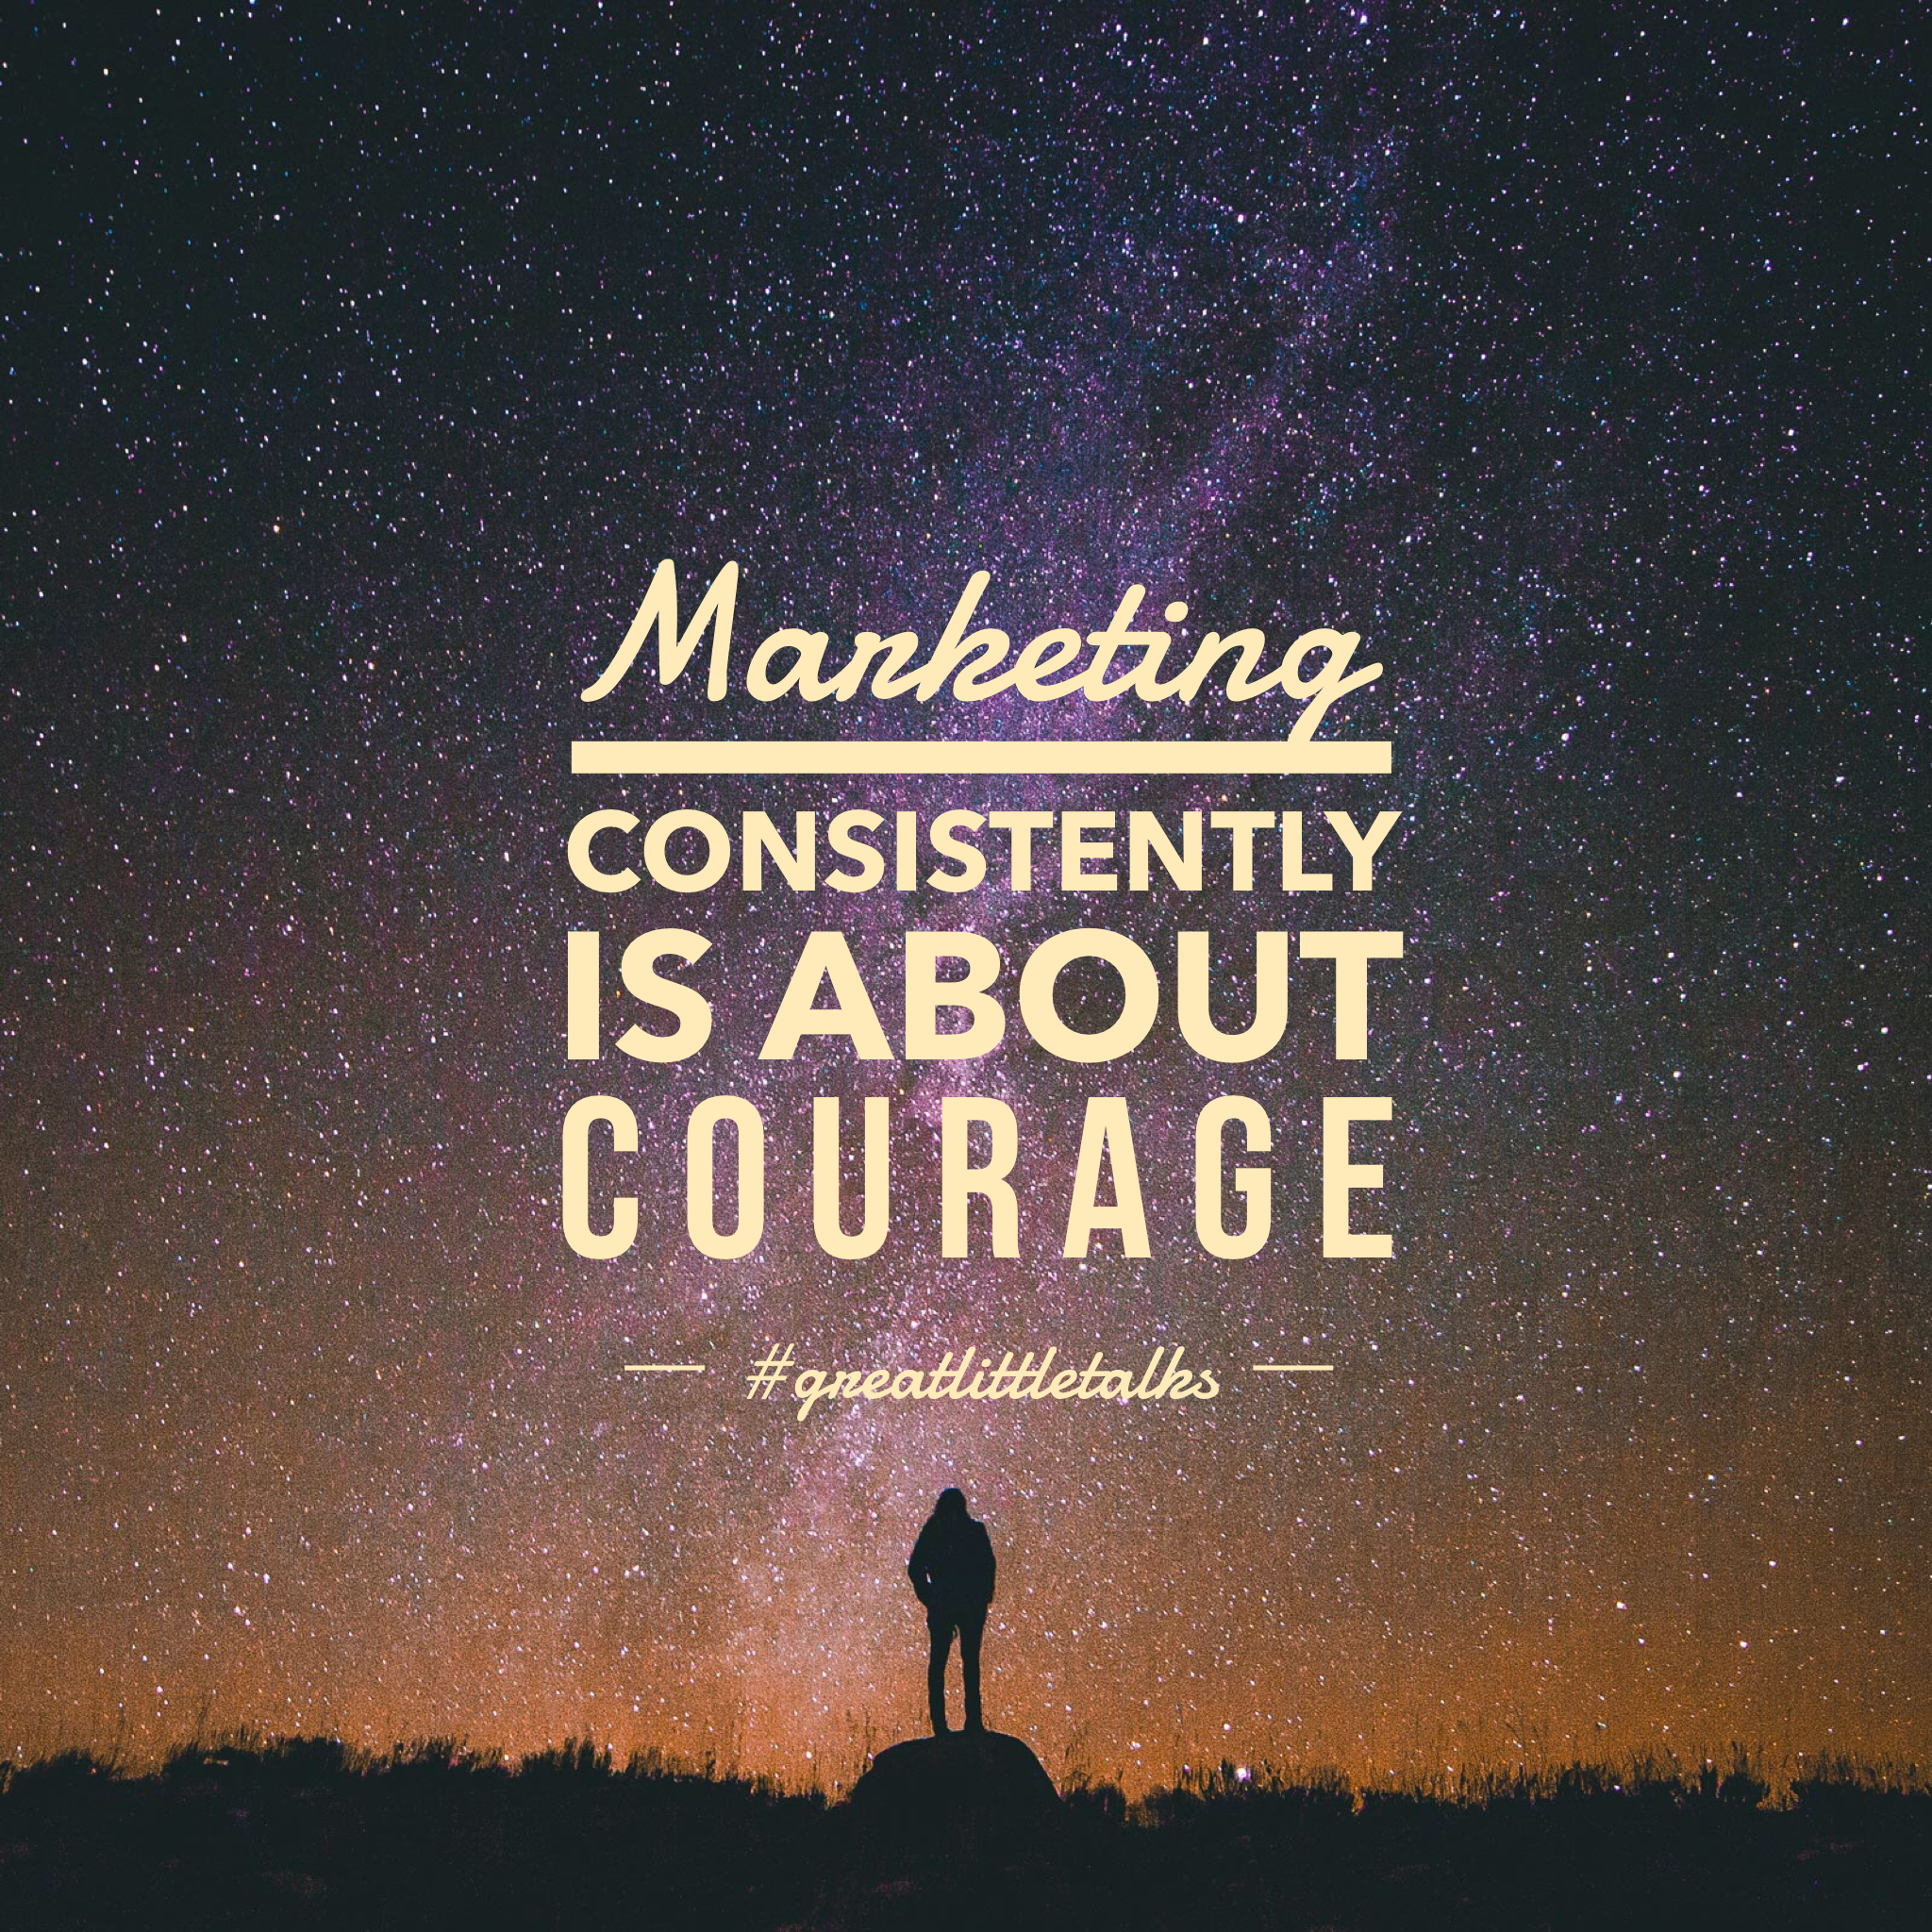 is marketing really About courage? by karin rozell of KarinRozell.com